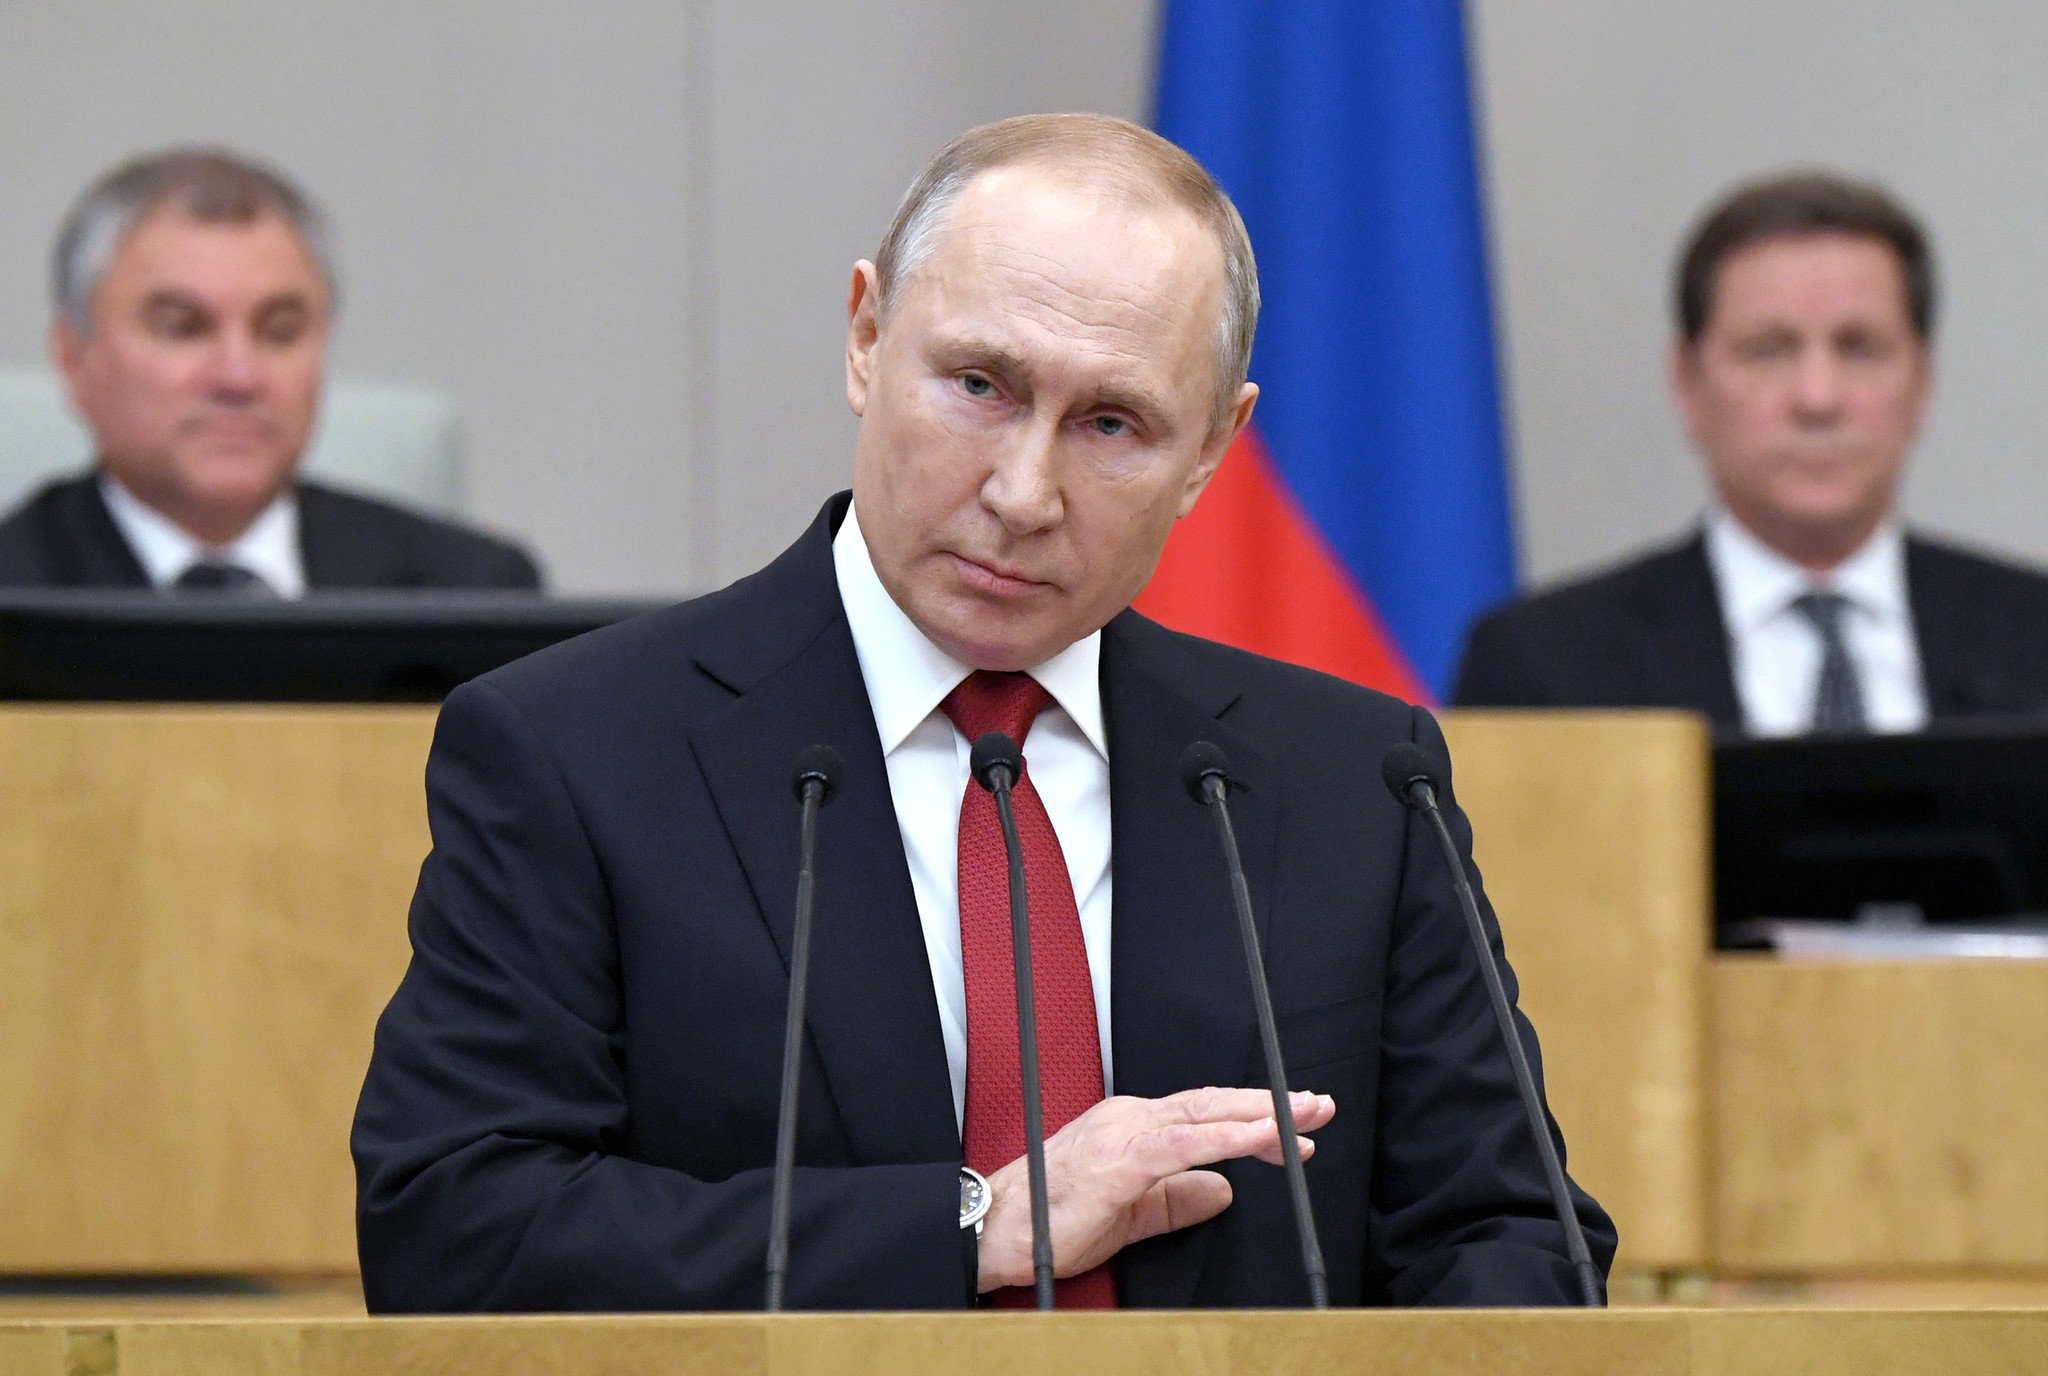 Vladimir Putin in position to remain Russian president, defy term limit in 2024